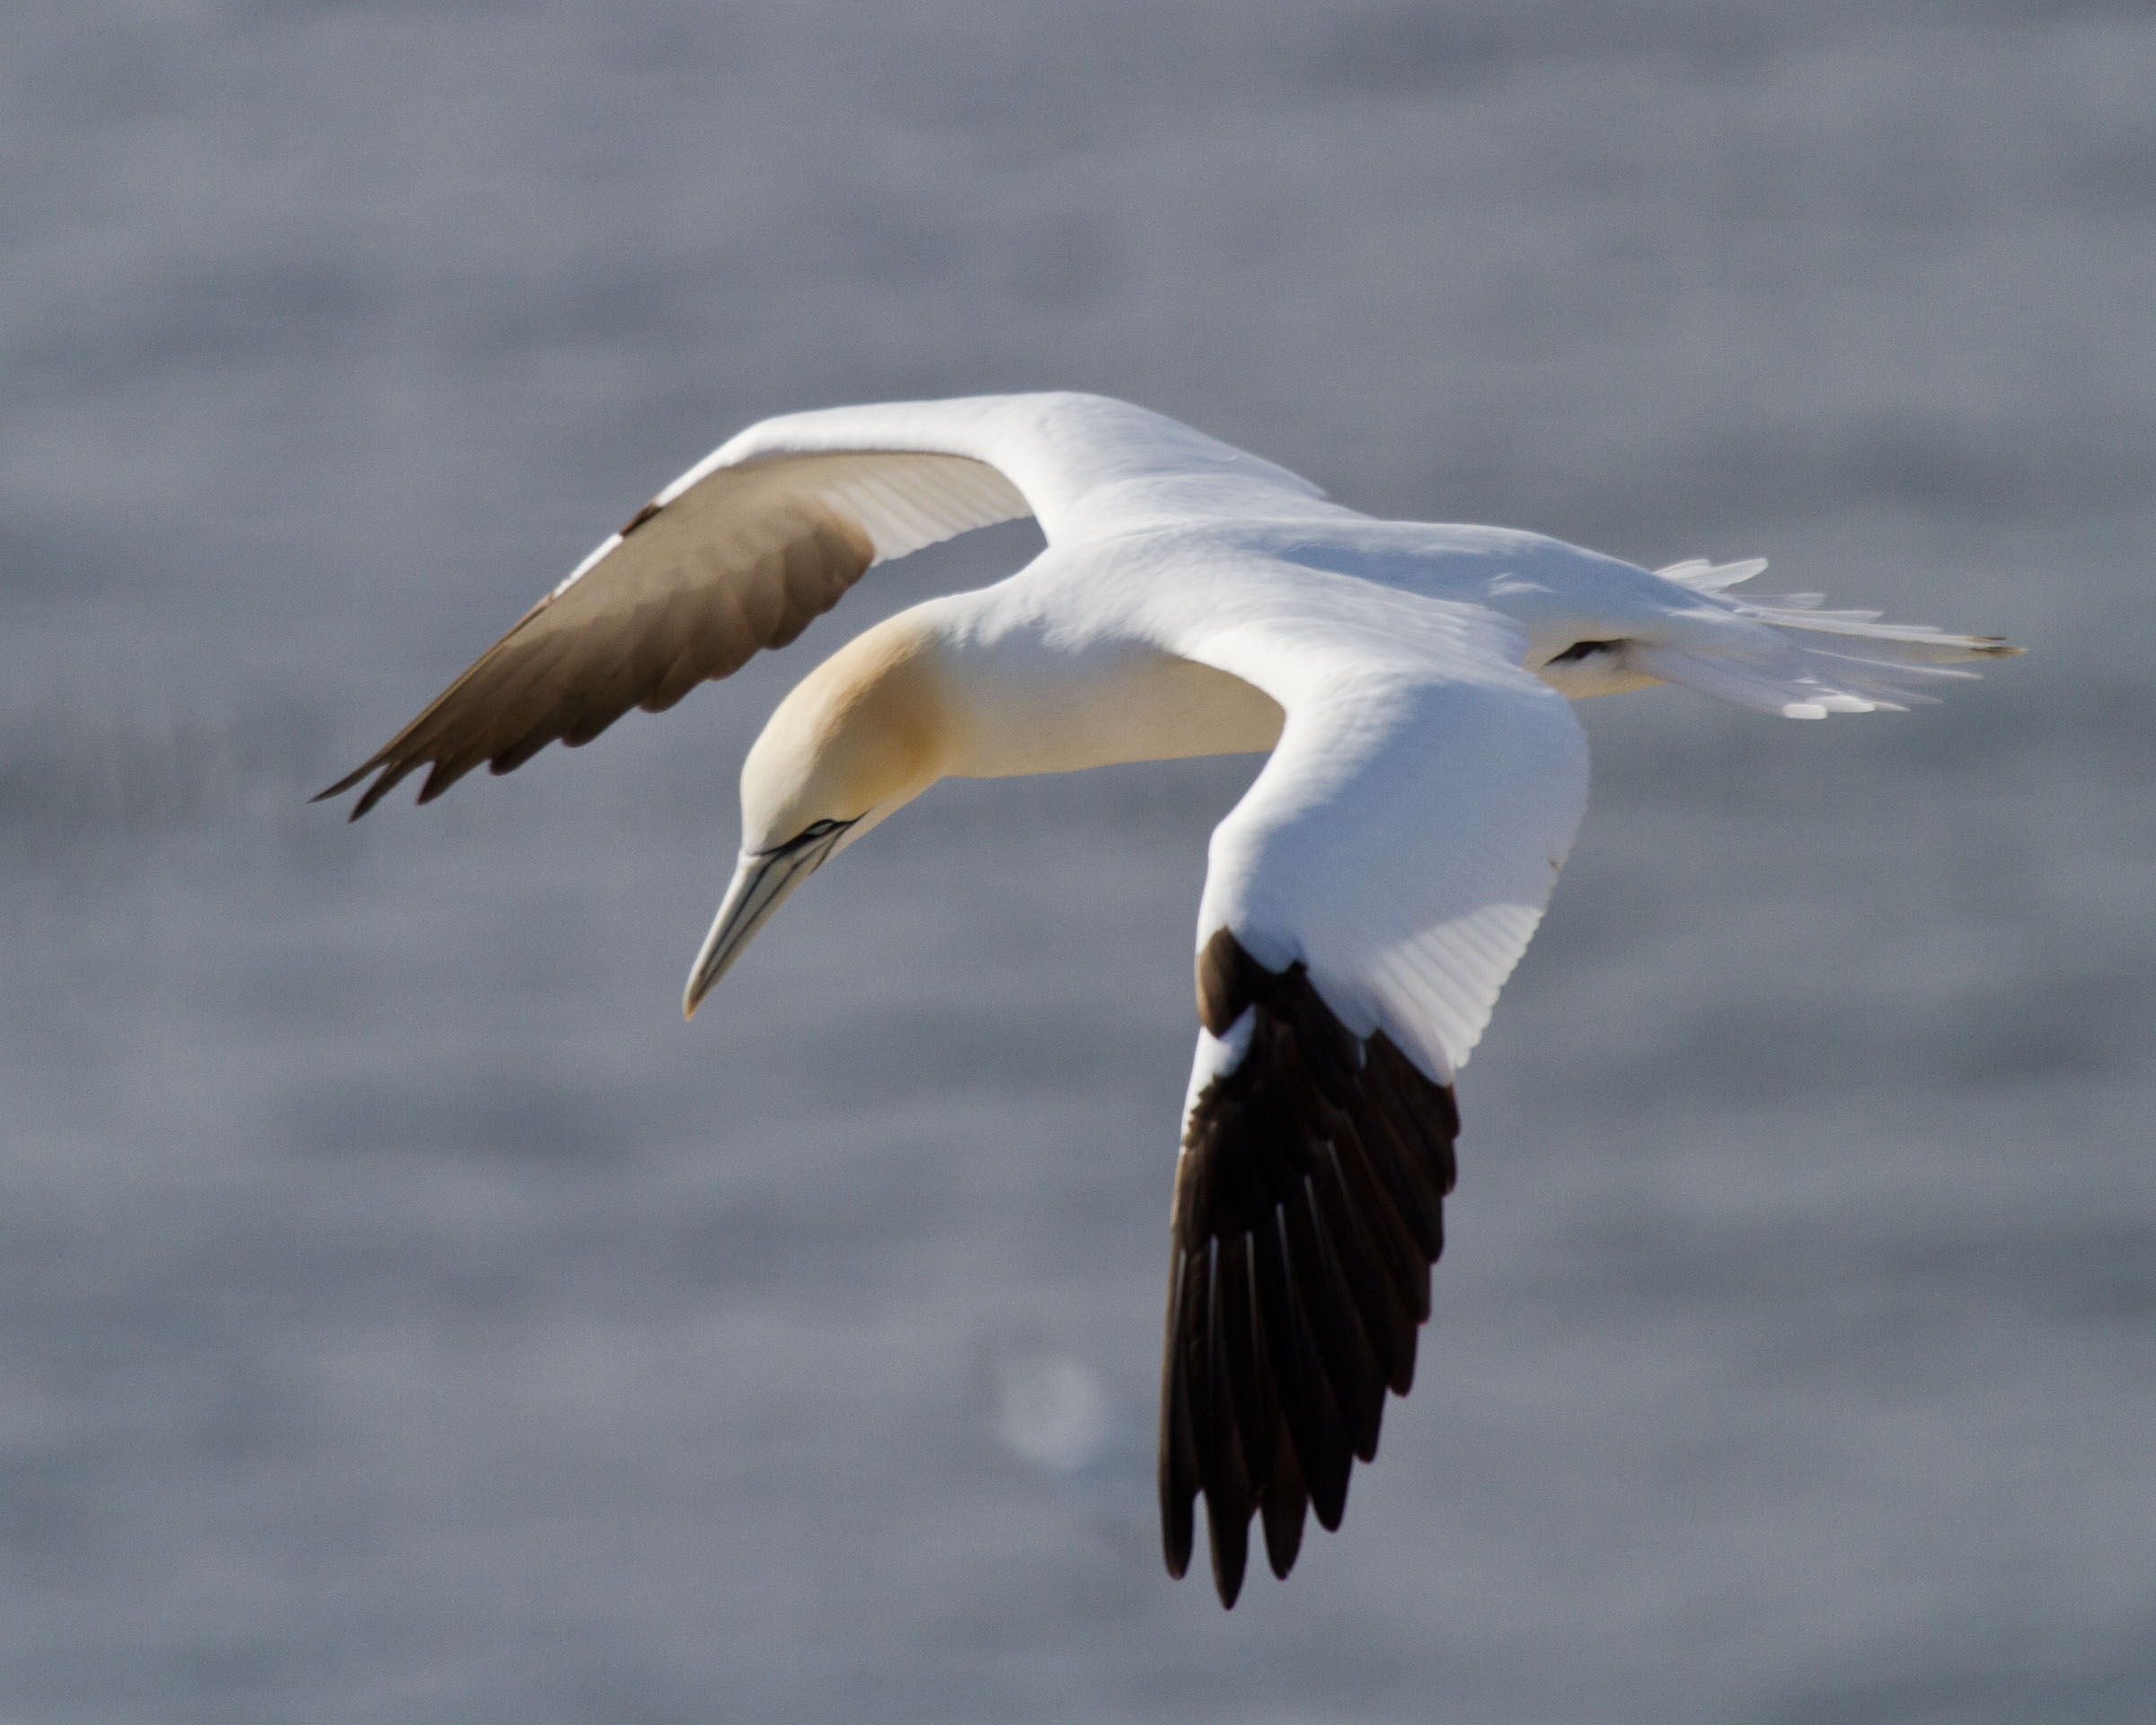 Gannet, Animal, Plumage, Mating, Morus, HQ Photo